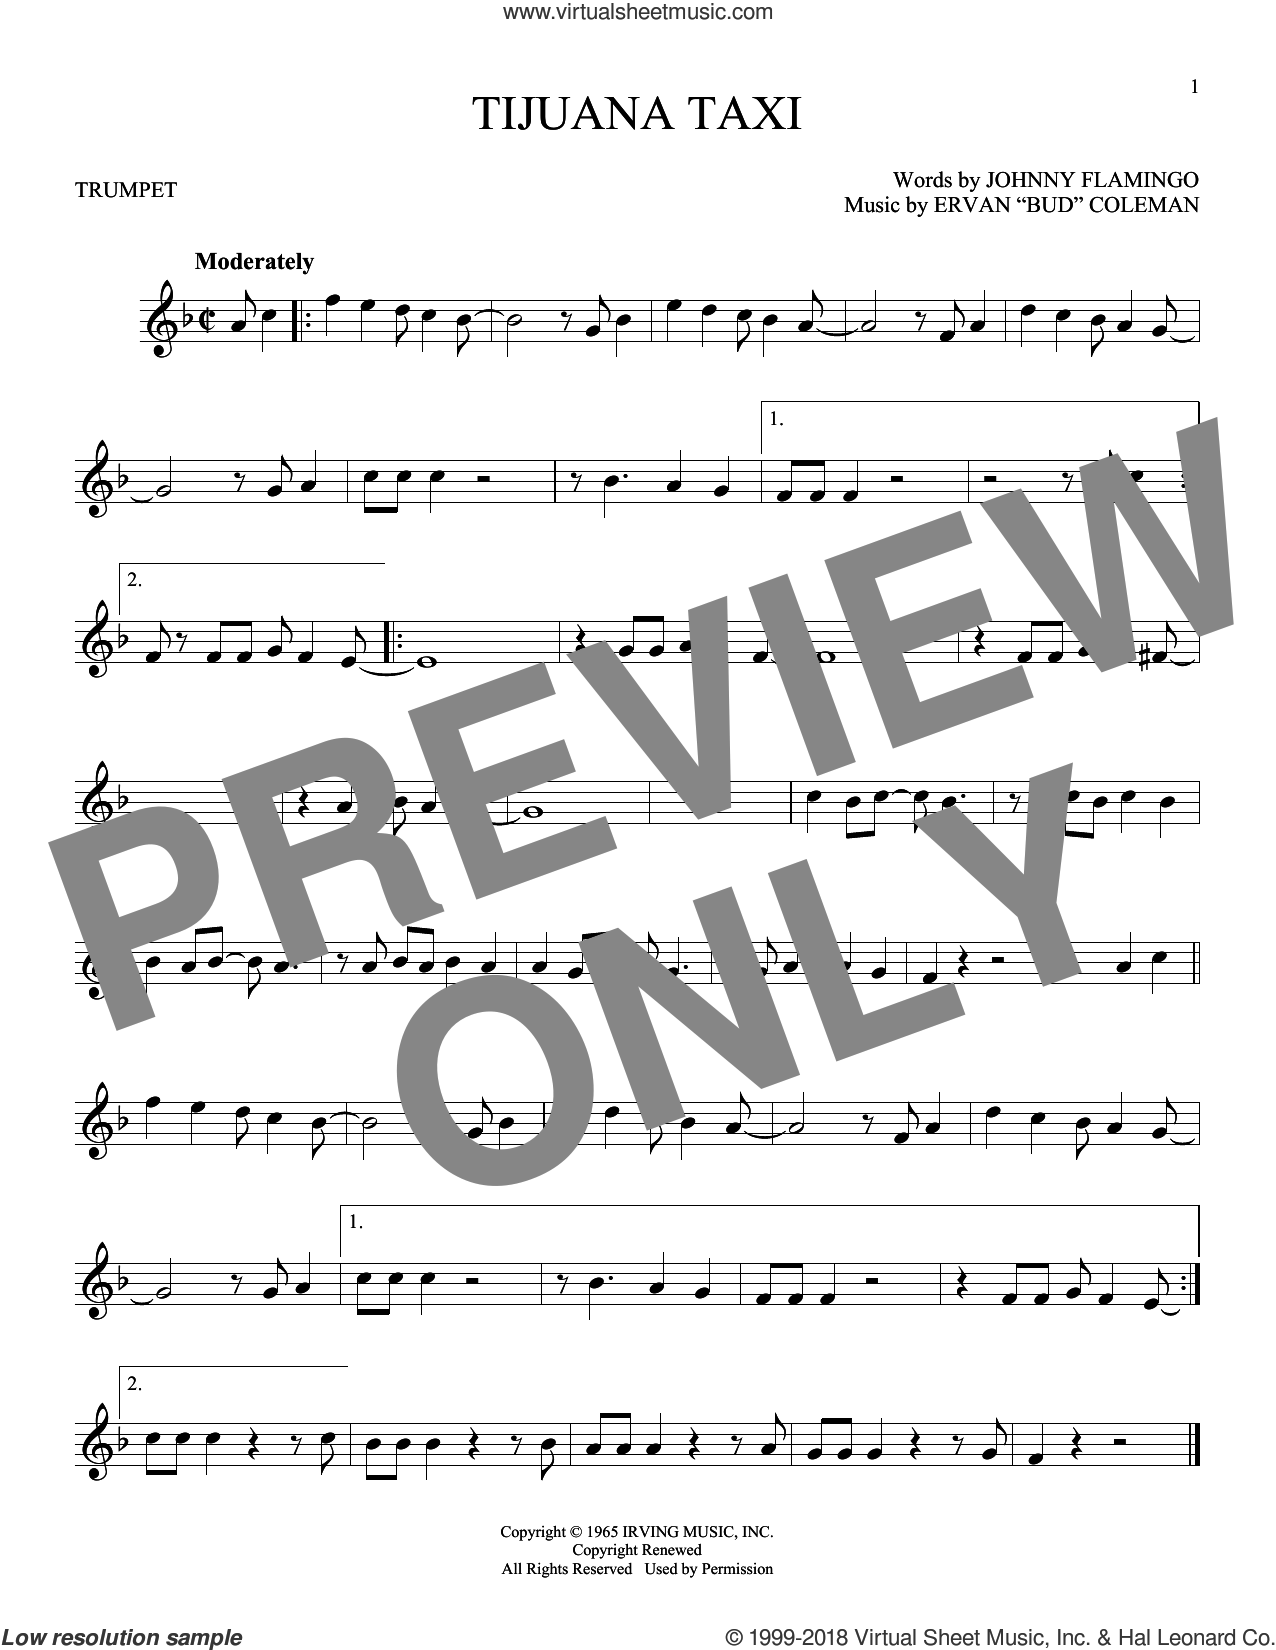 Tijuana Taxi sheet music for trumpet solo by Johnny Flamingo and Ervan